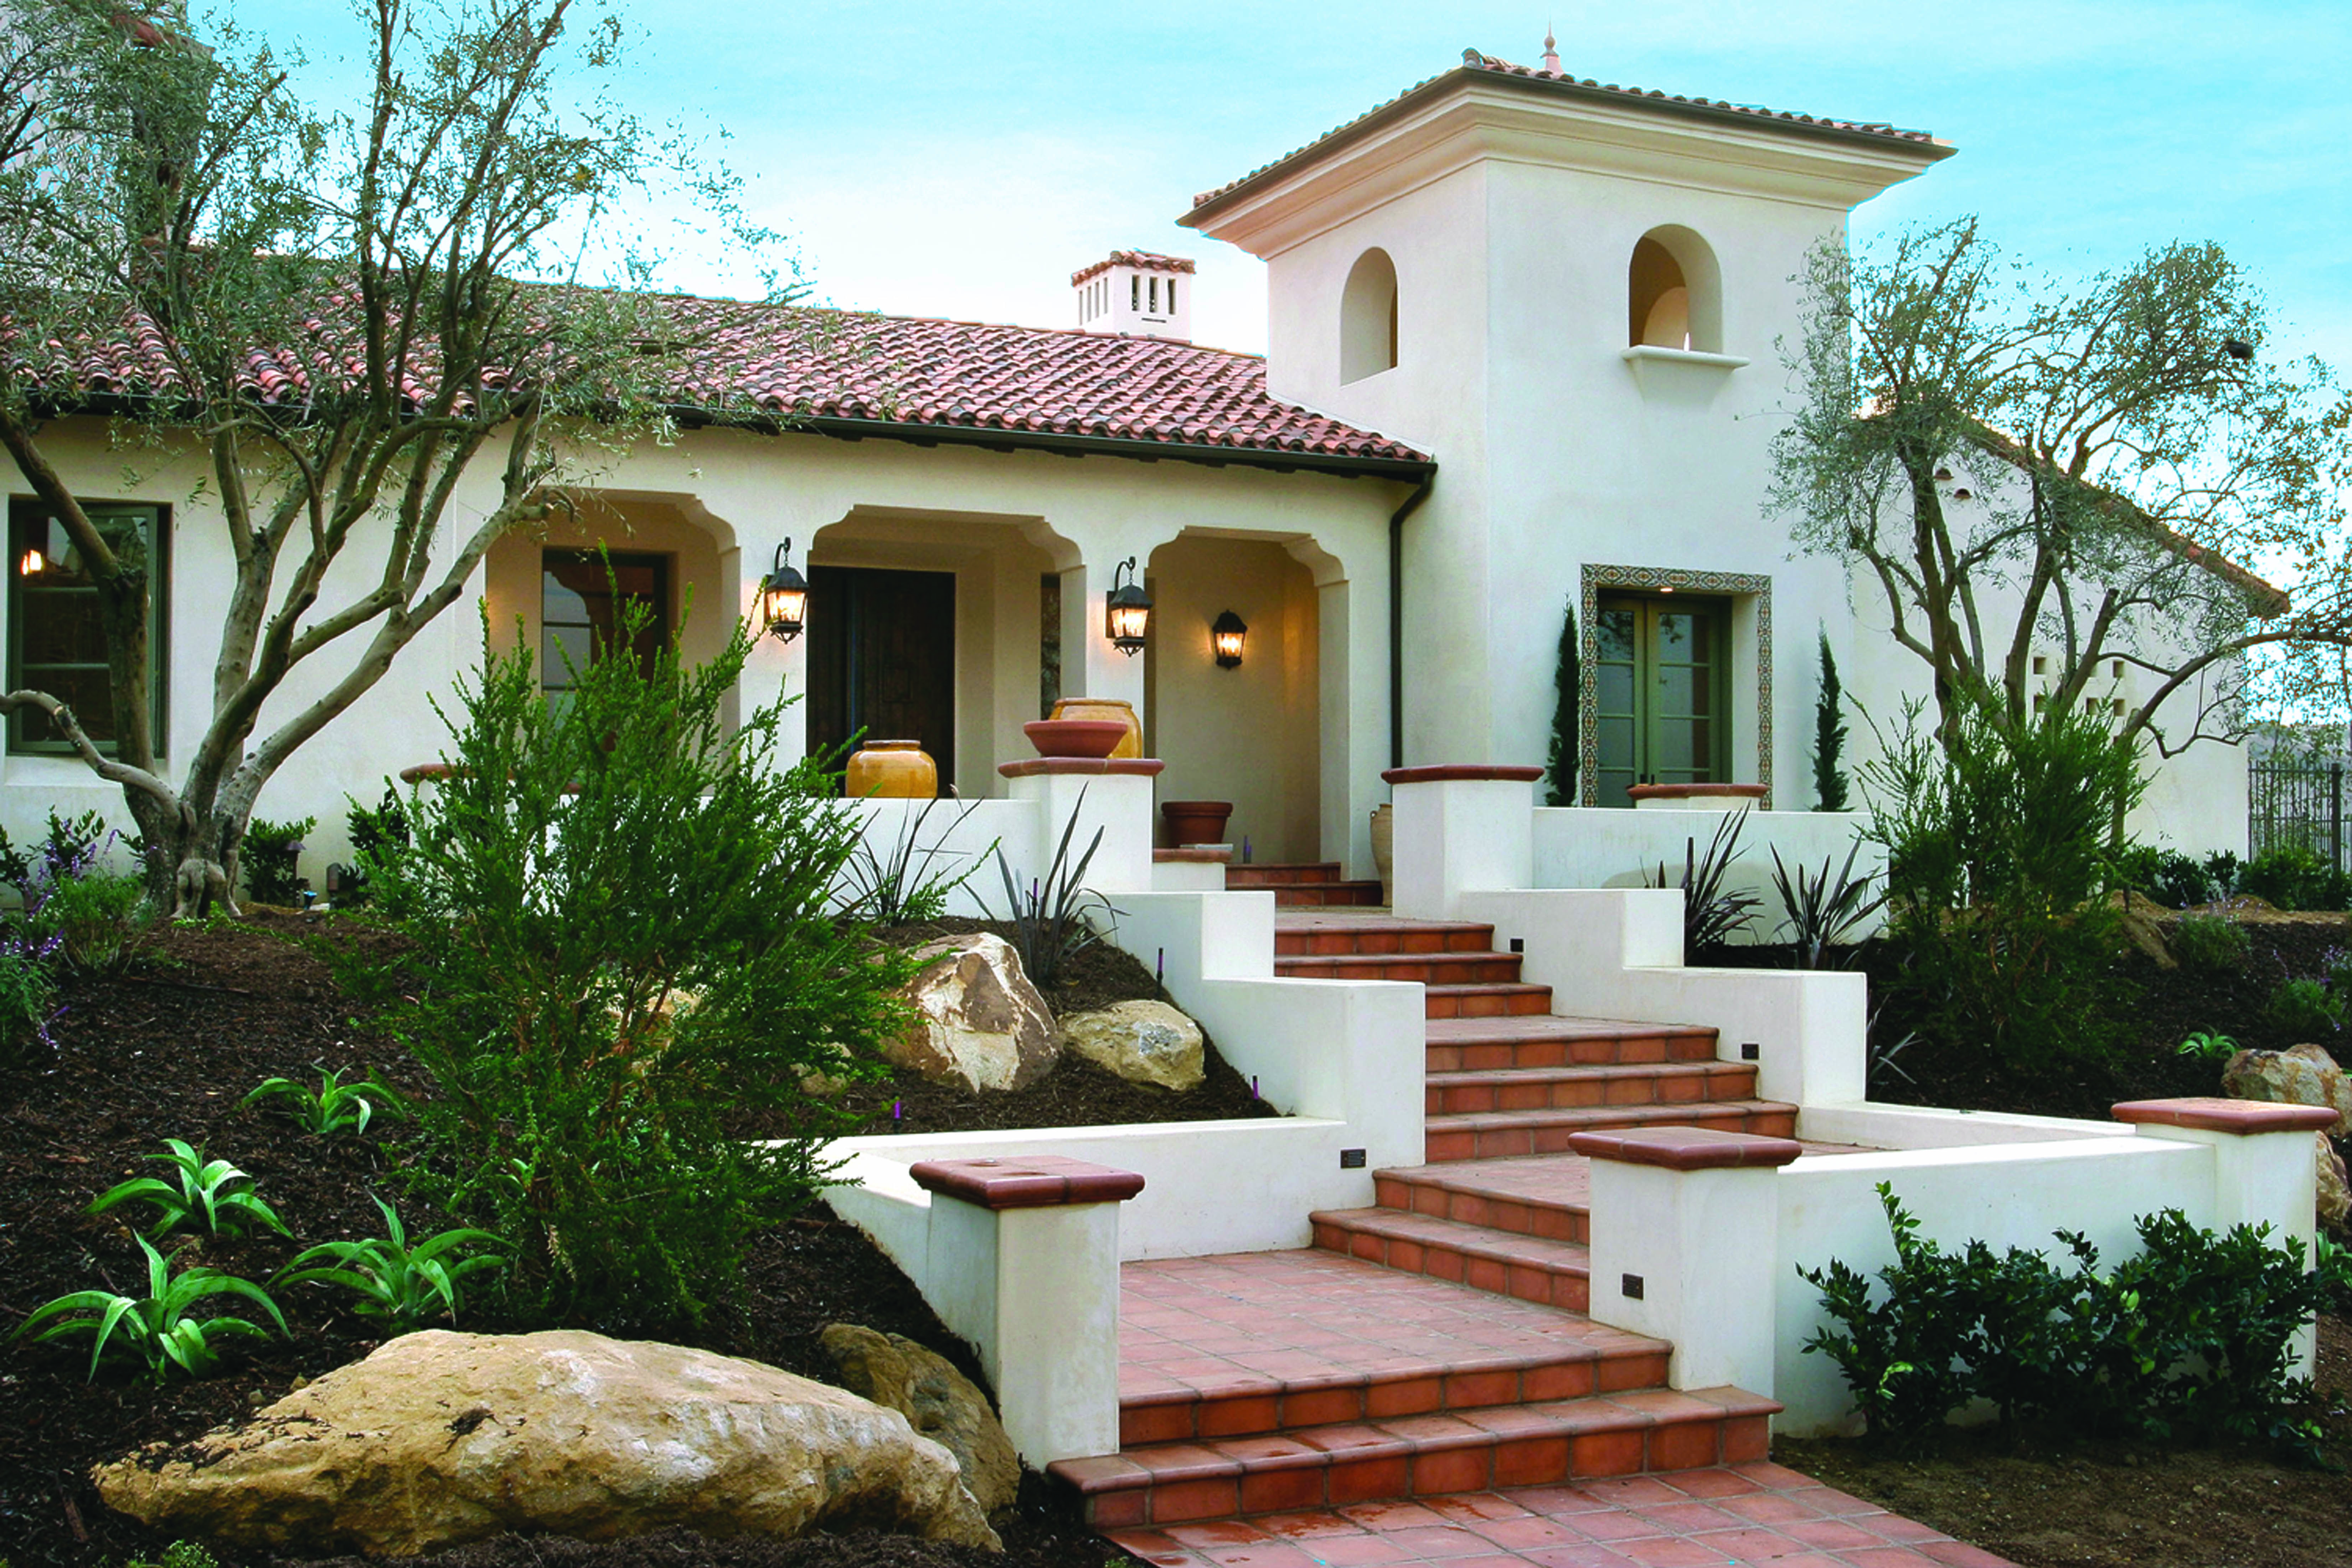 30 Modern Spanish Homes For Your Inspiration Spanish Style Homes Spanish Colonial Homes Spanish House